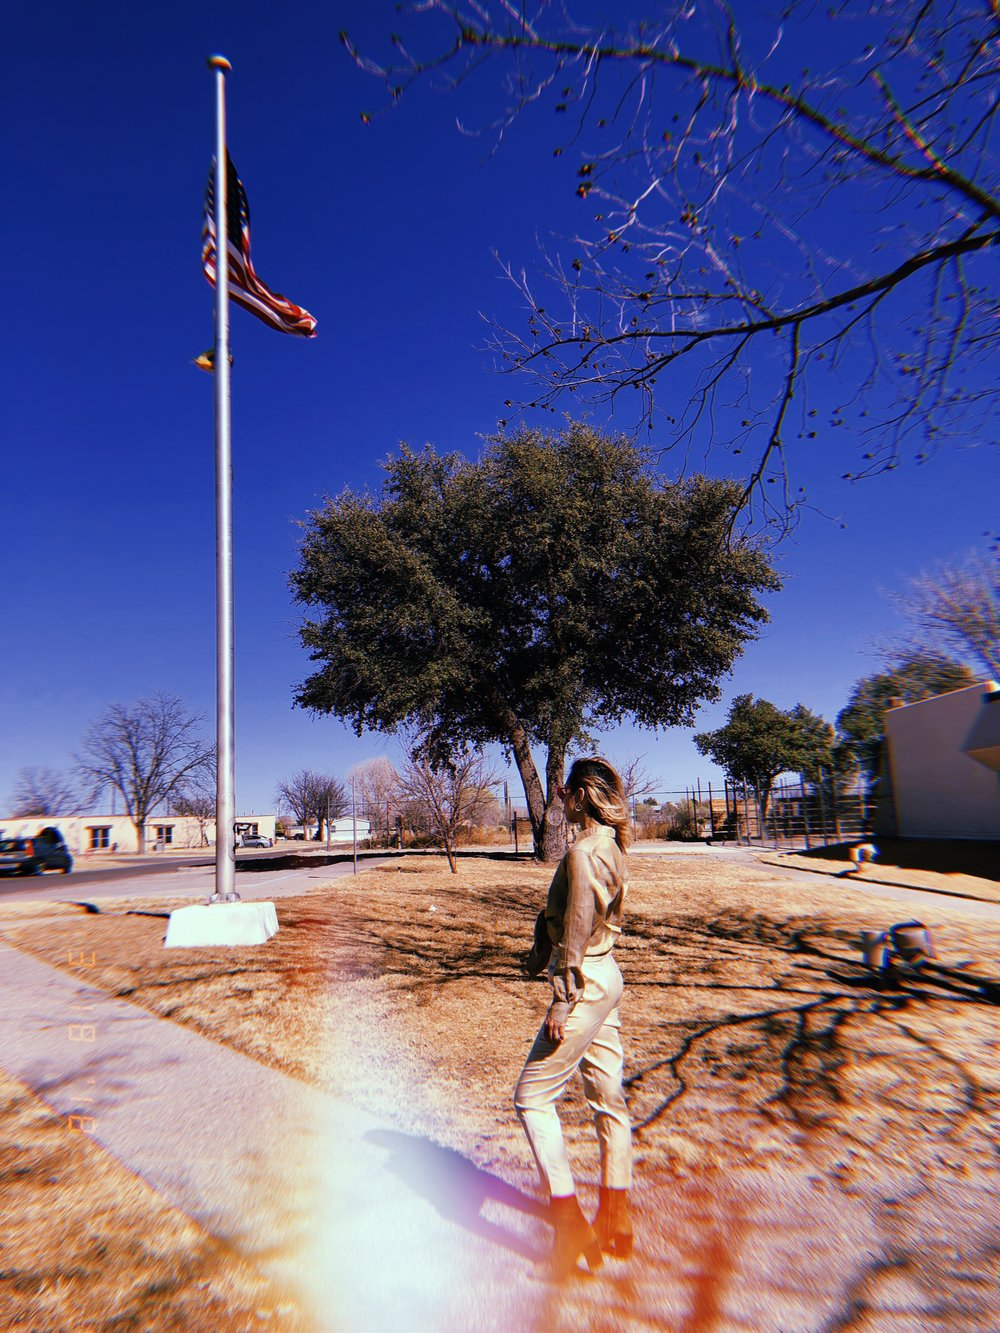 The Marfa Dream; FINAL CUT IMAGE.JPG